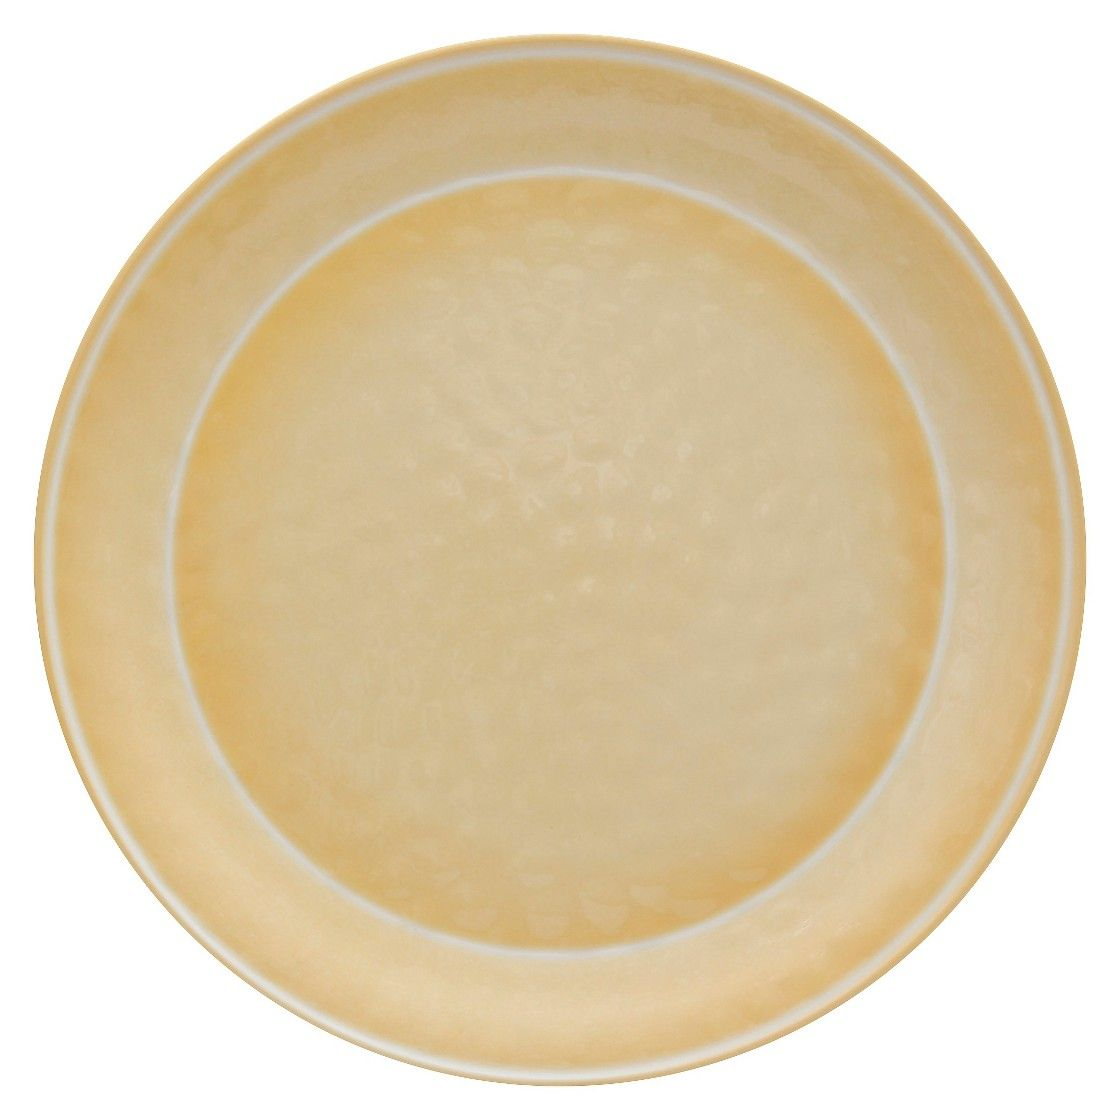 Threshold� Melamine Dinner Plate - Yellow